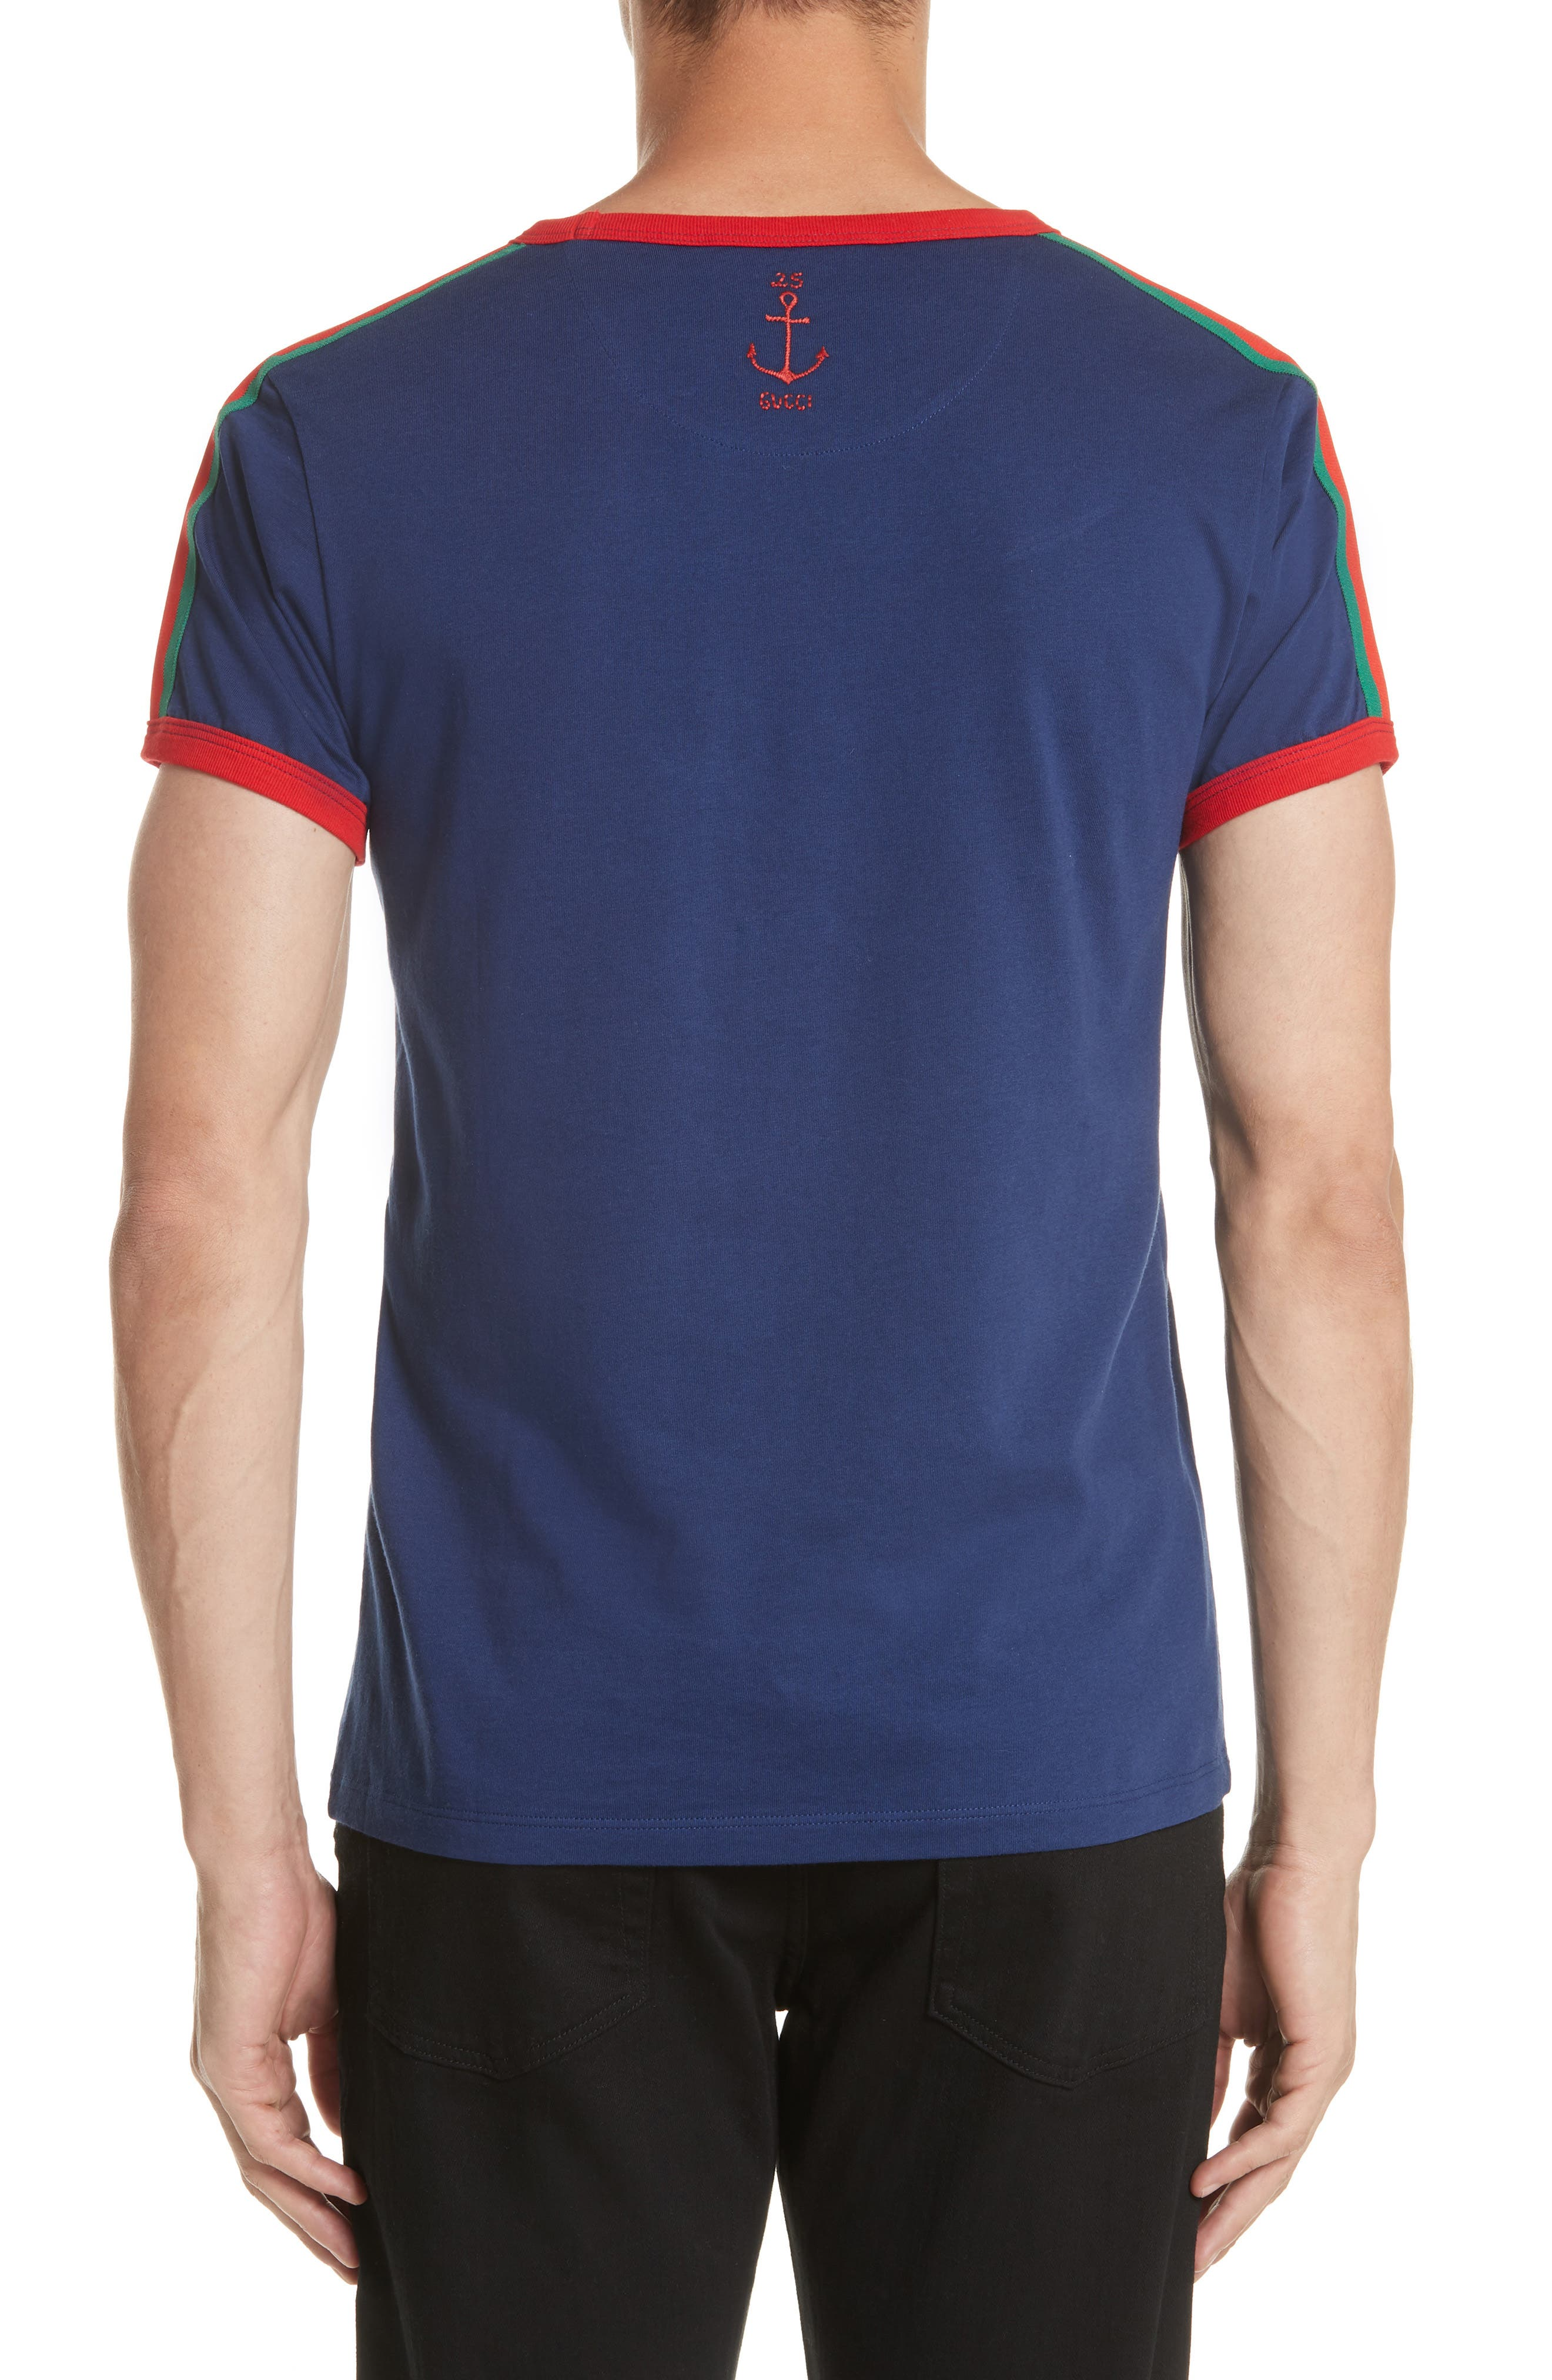 Guccification T-Shirt,                             Alternate thumbnail 2, color,                             968